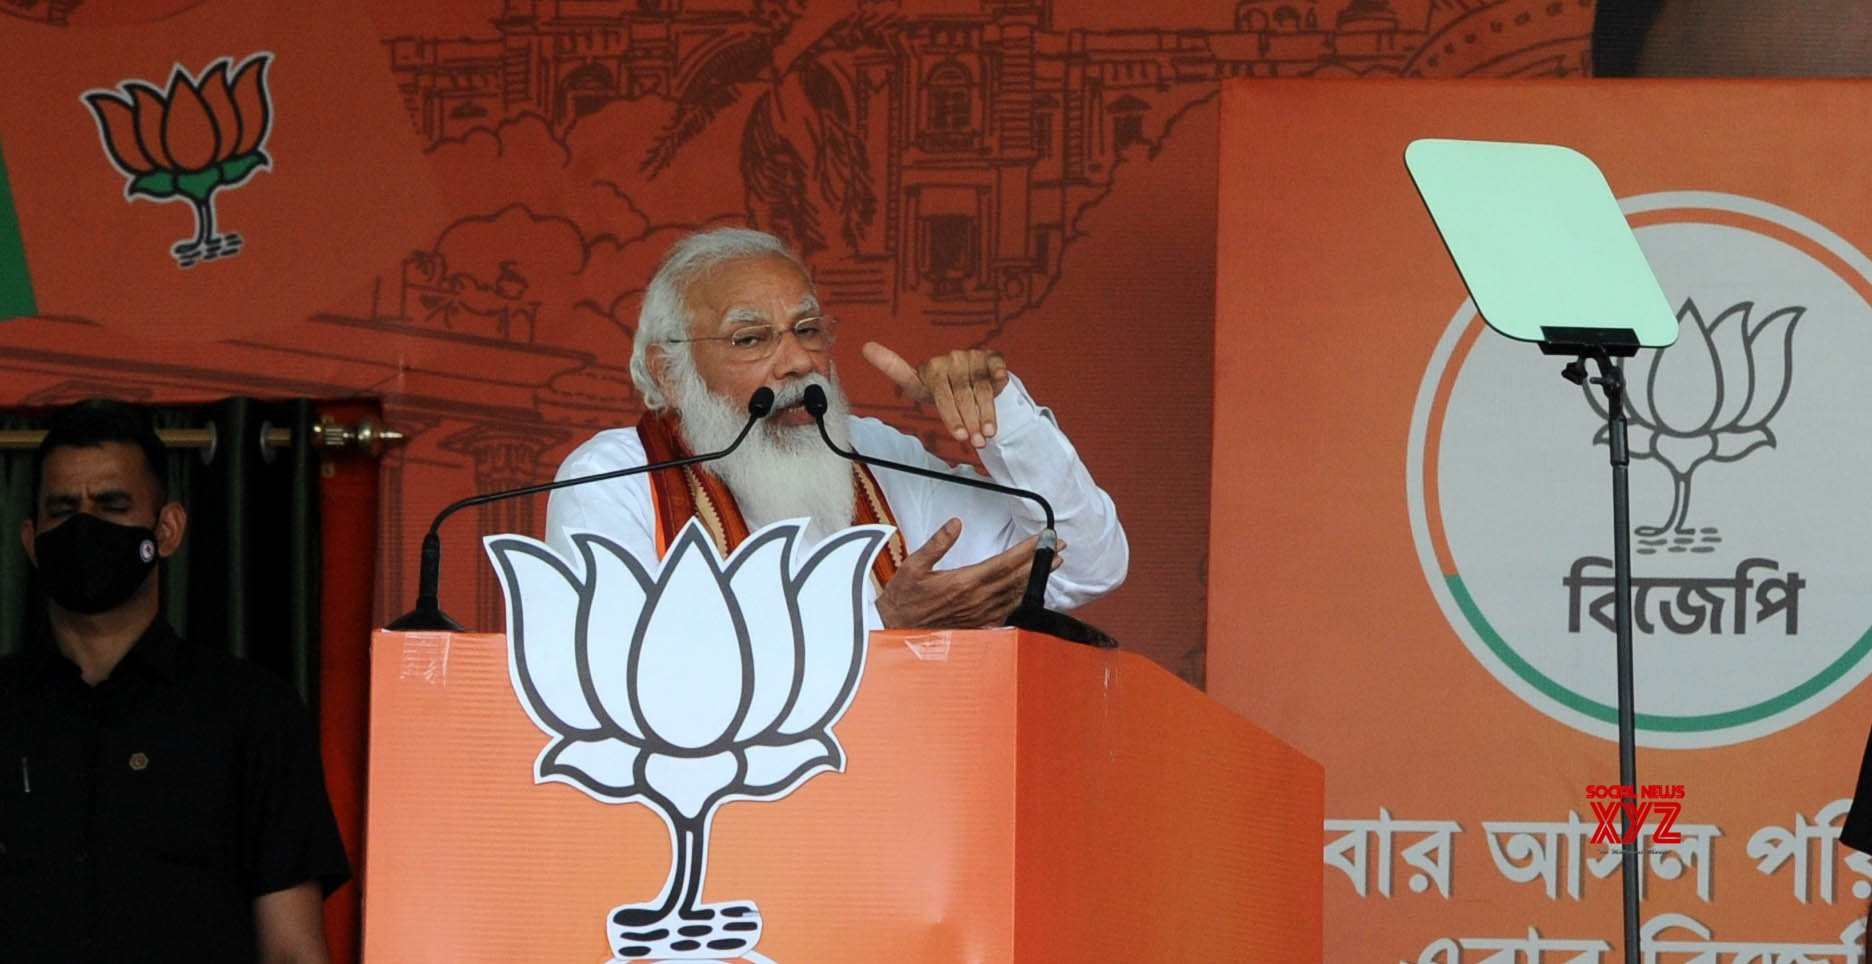 Kolkata : Prime Minister Narendra Modi at a election campaign at Dumurjala Stadium during State Assembly election at Howrah in West Bengal on April 6, 2021. #Gallery